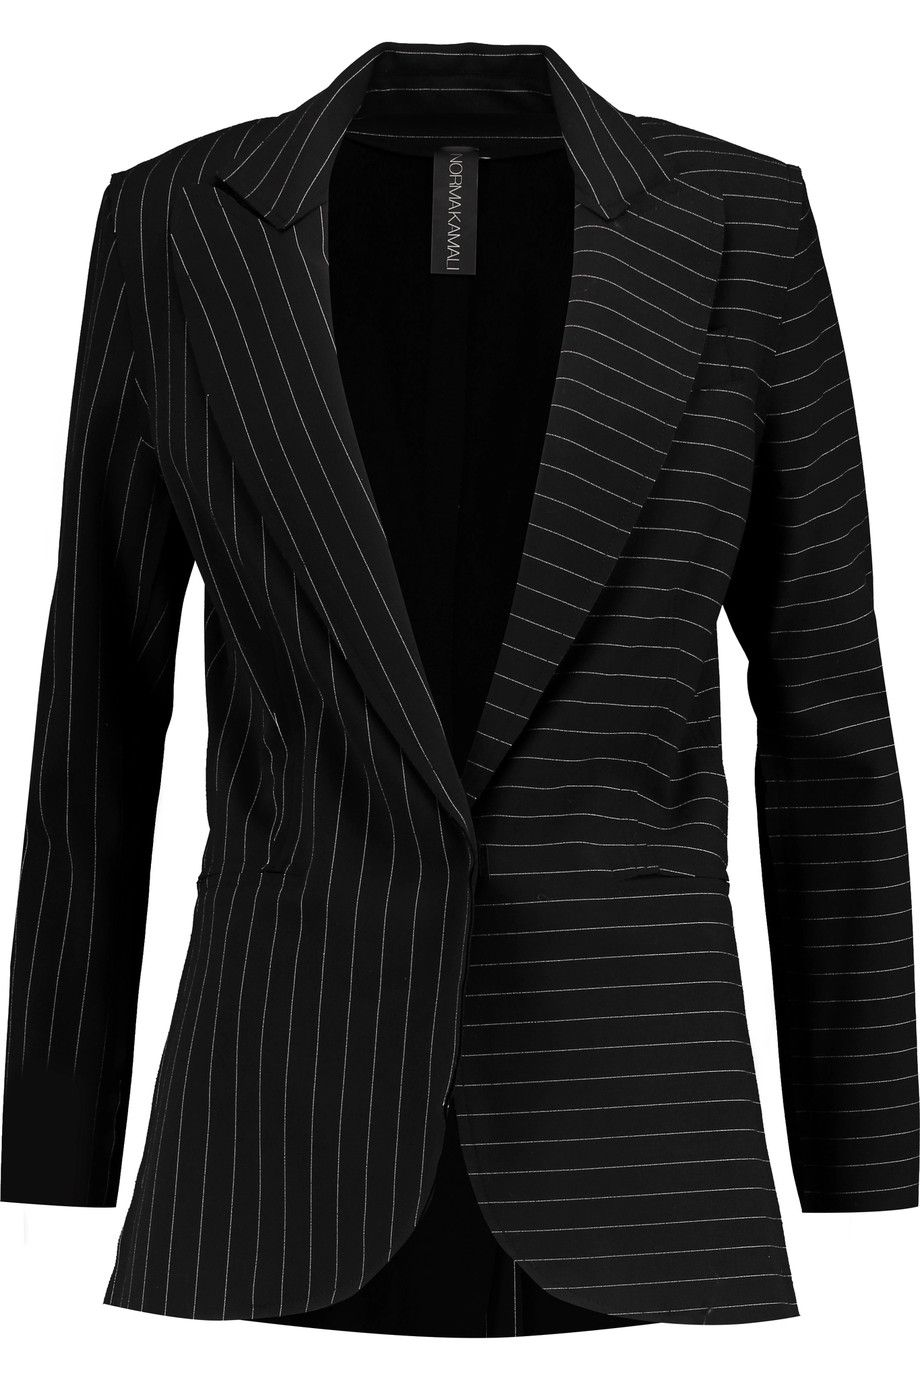 Shop on-sale Norma Kamali Pinstriped crepe blazer. Browse other discount  designer Jackets & more on The Most Fashionable Fashion Outlet, THE OUTNET.